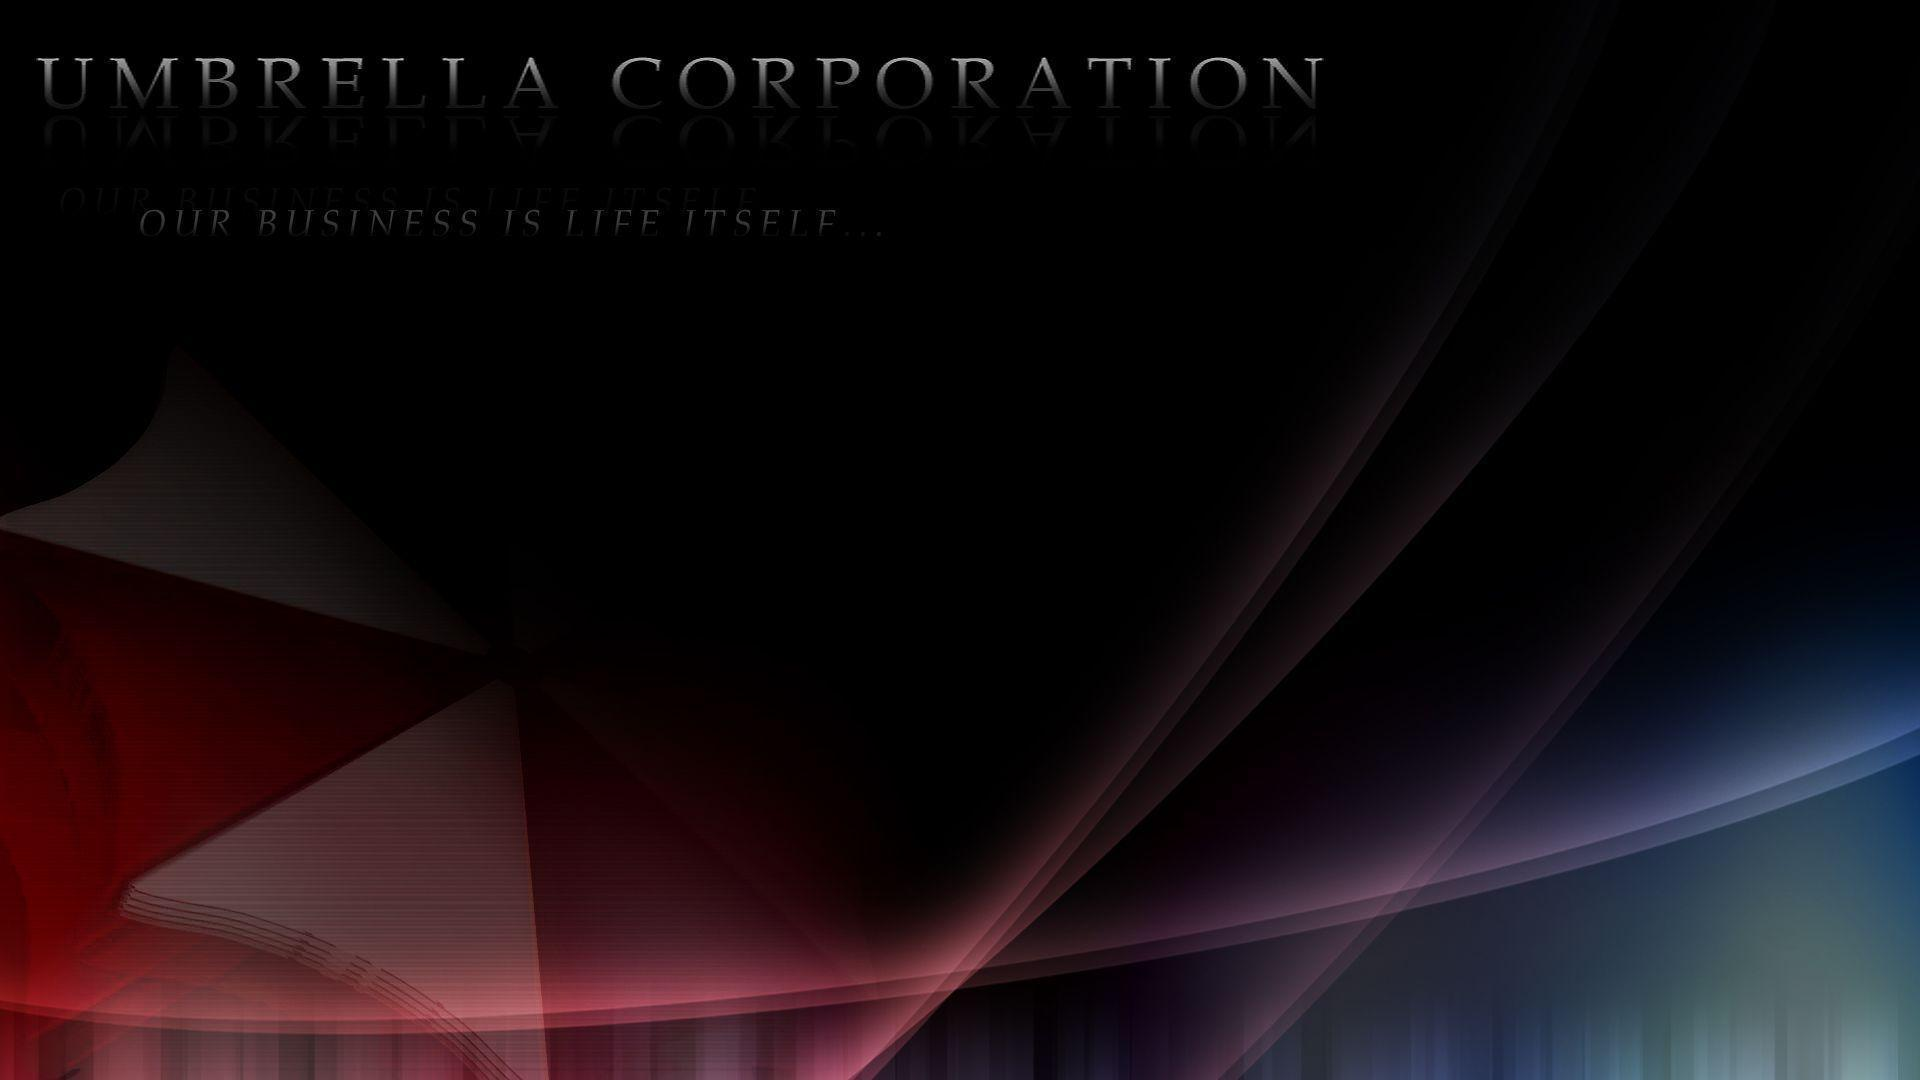 Umbrella Corporation Wallpapers image